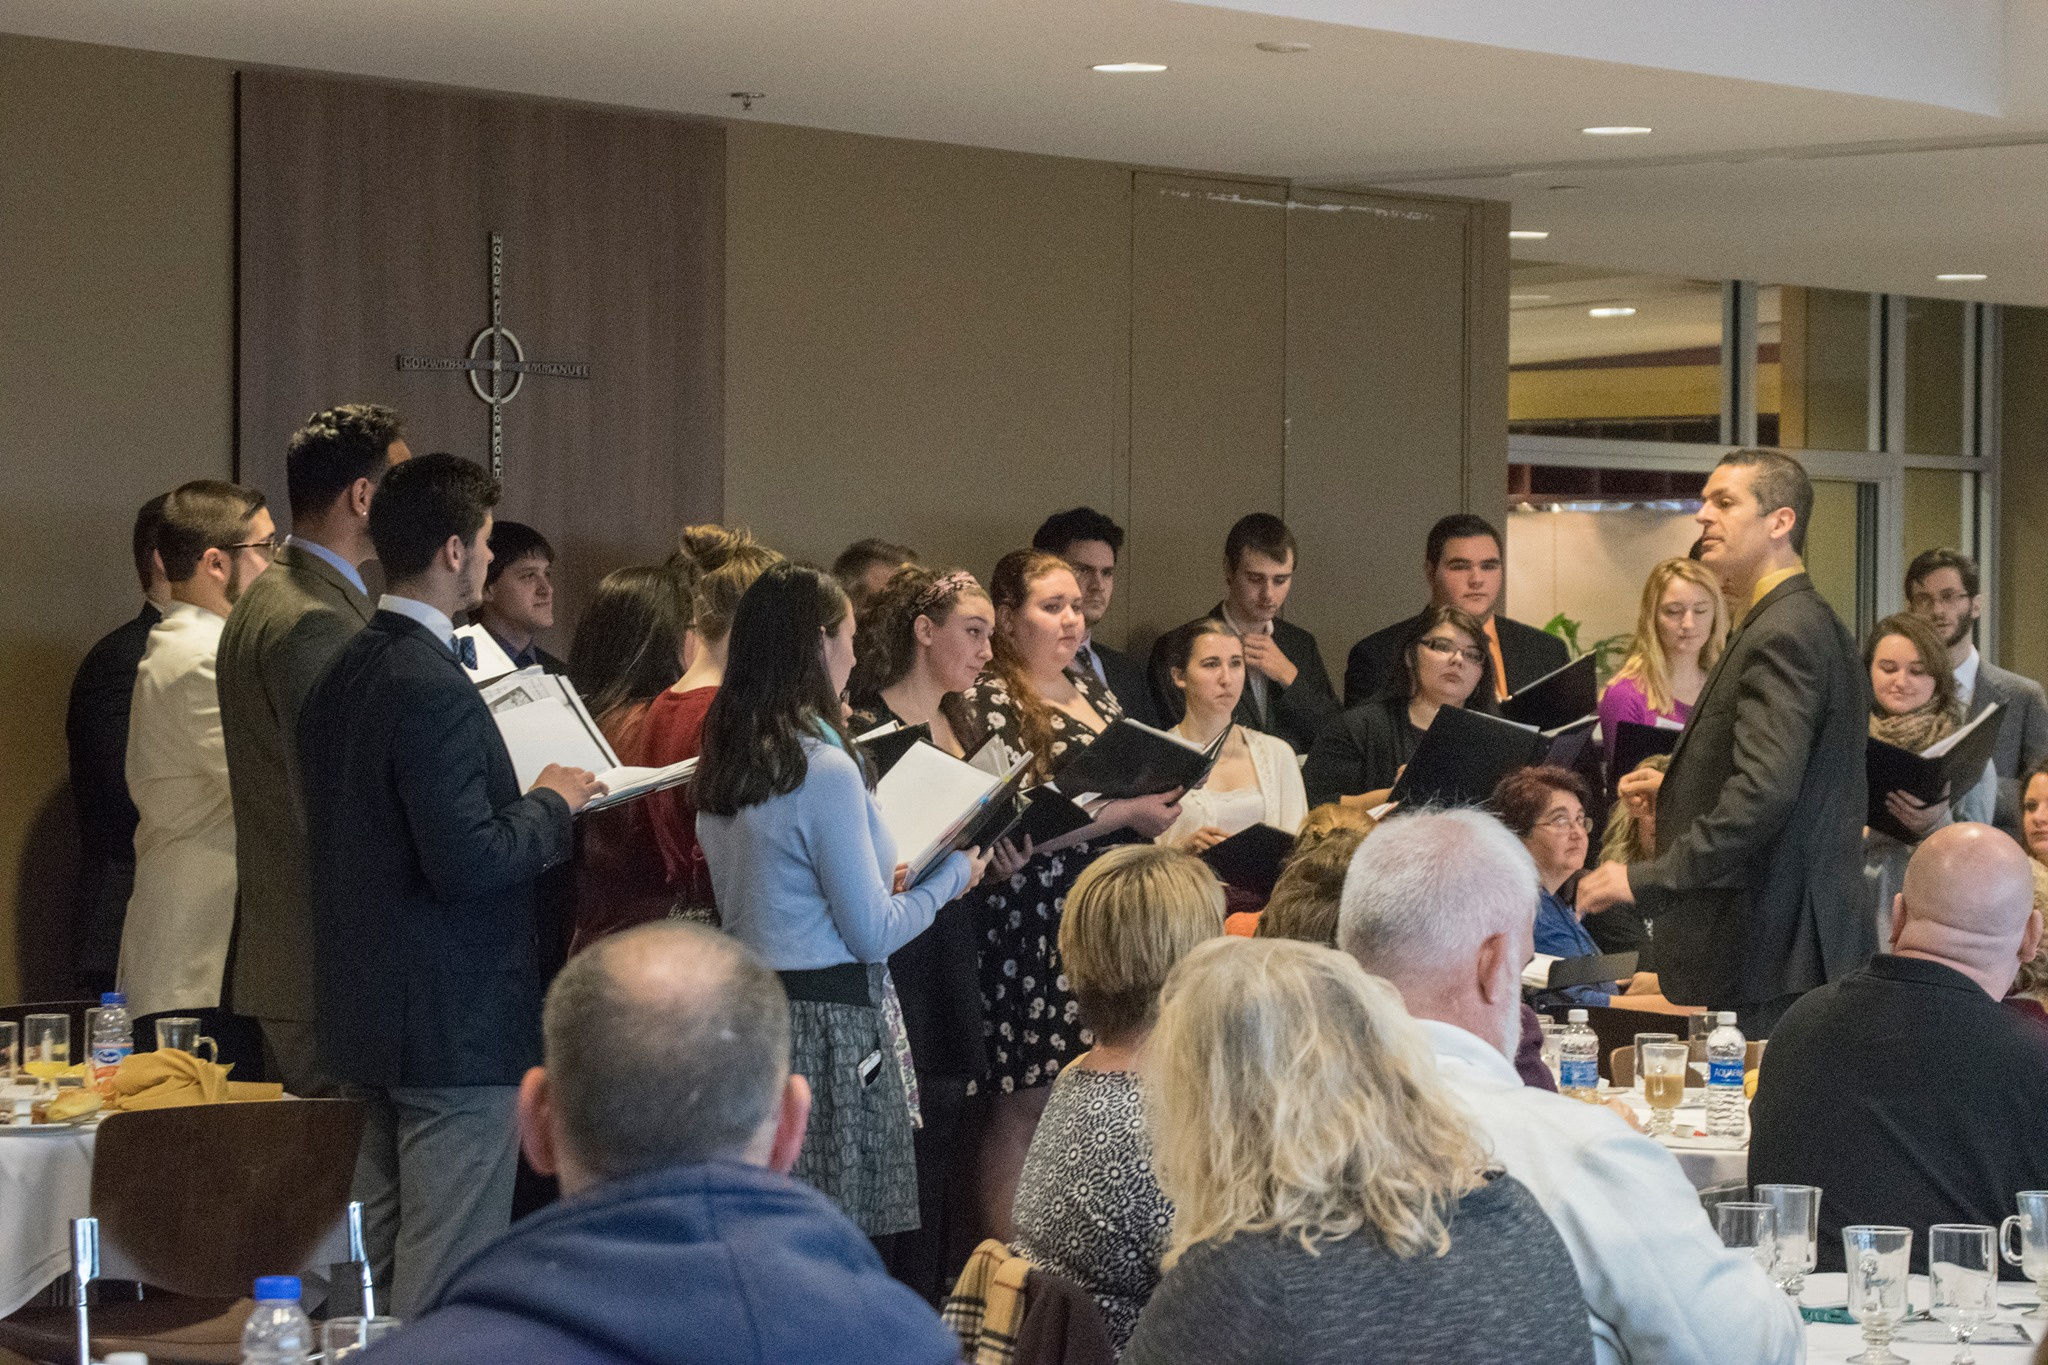 The Marywood Chamber Singers performed a short collection of songs to the people present at the breakfast.